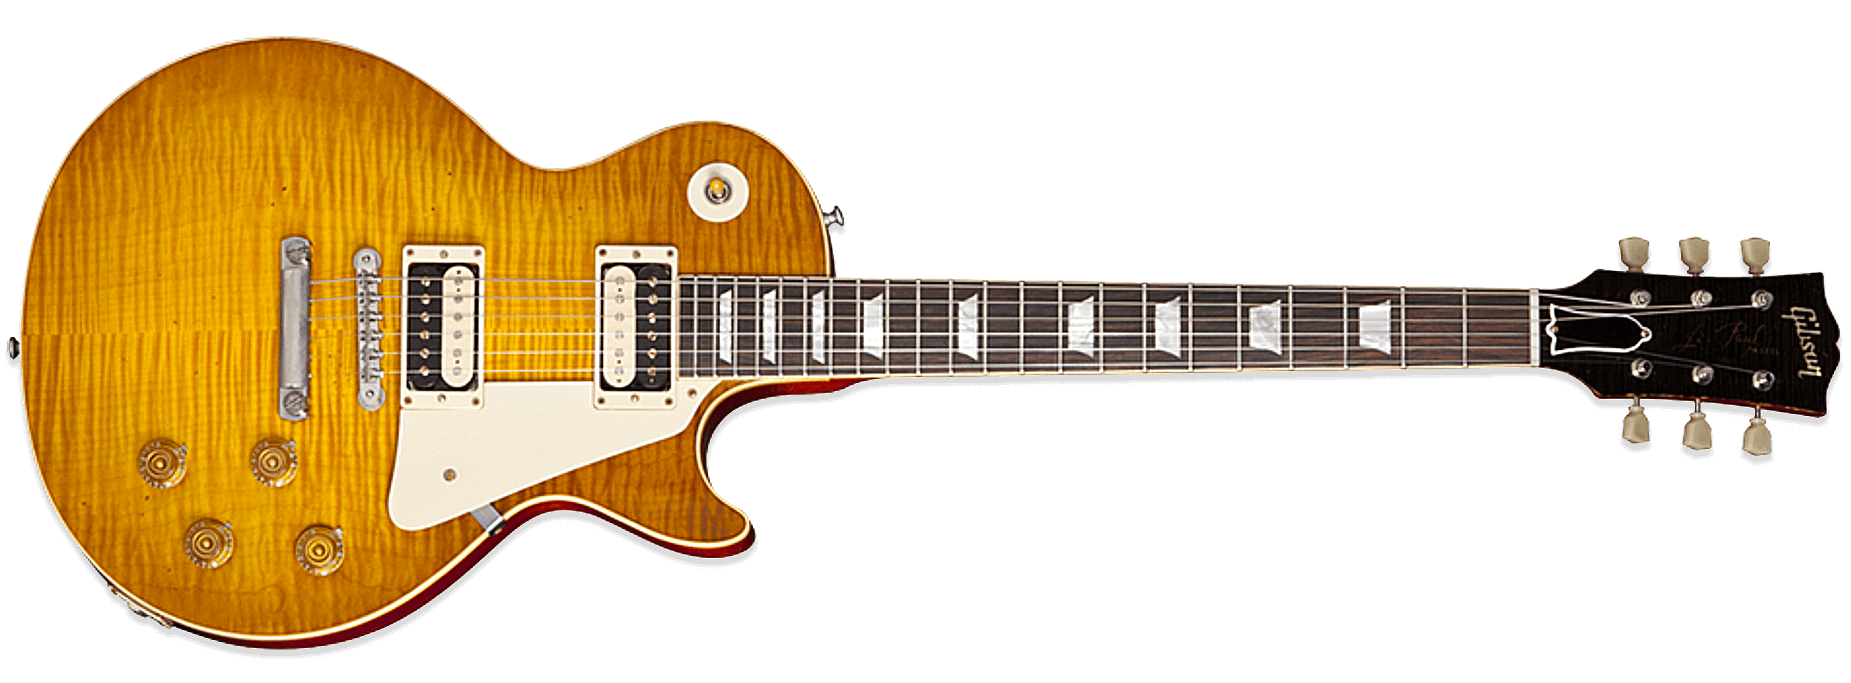 Gibson Collector's Choice #4 1959 Les Paul Sandy